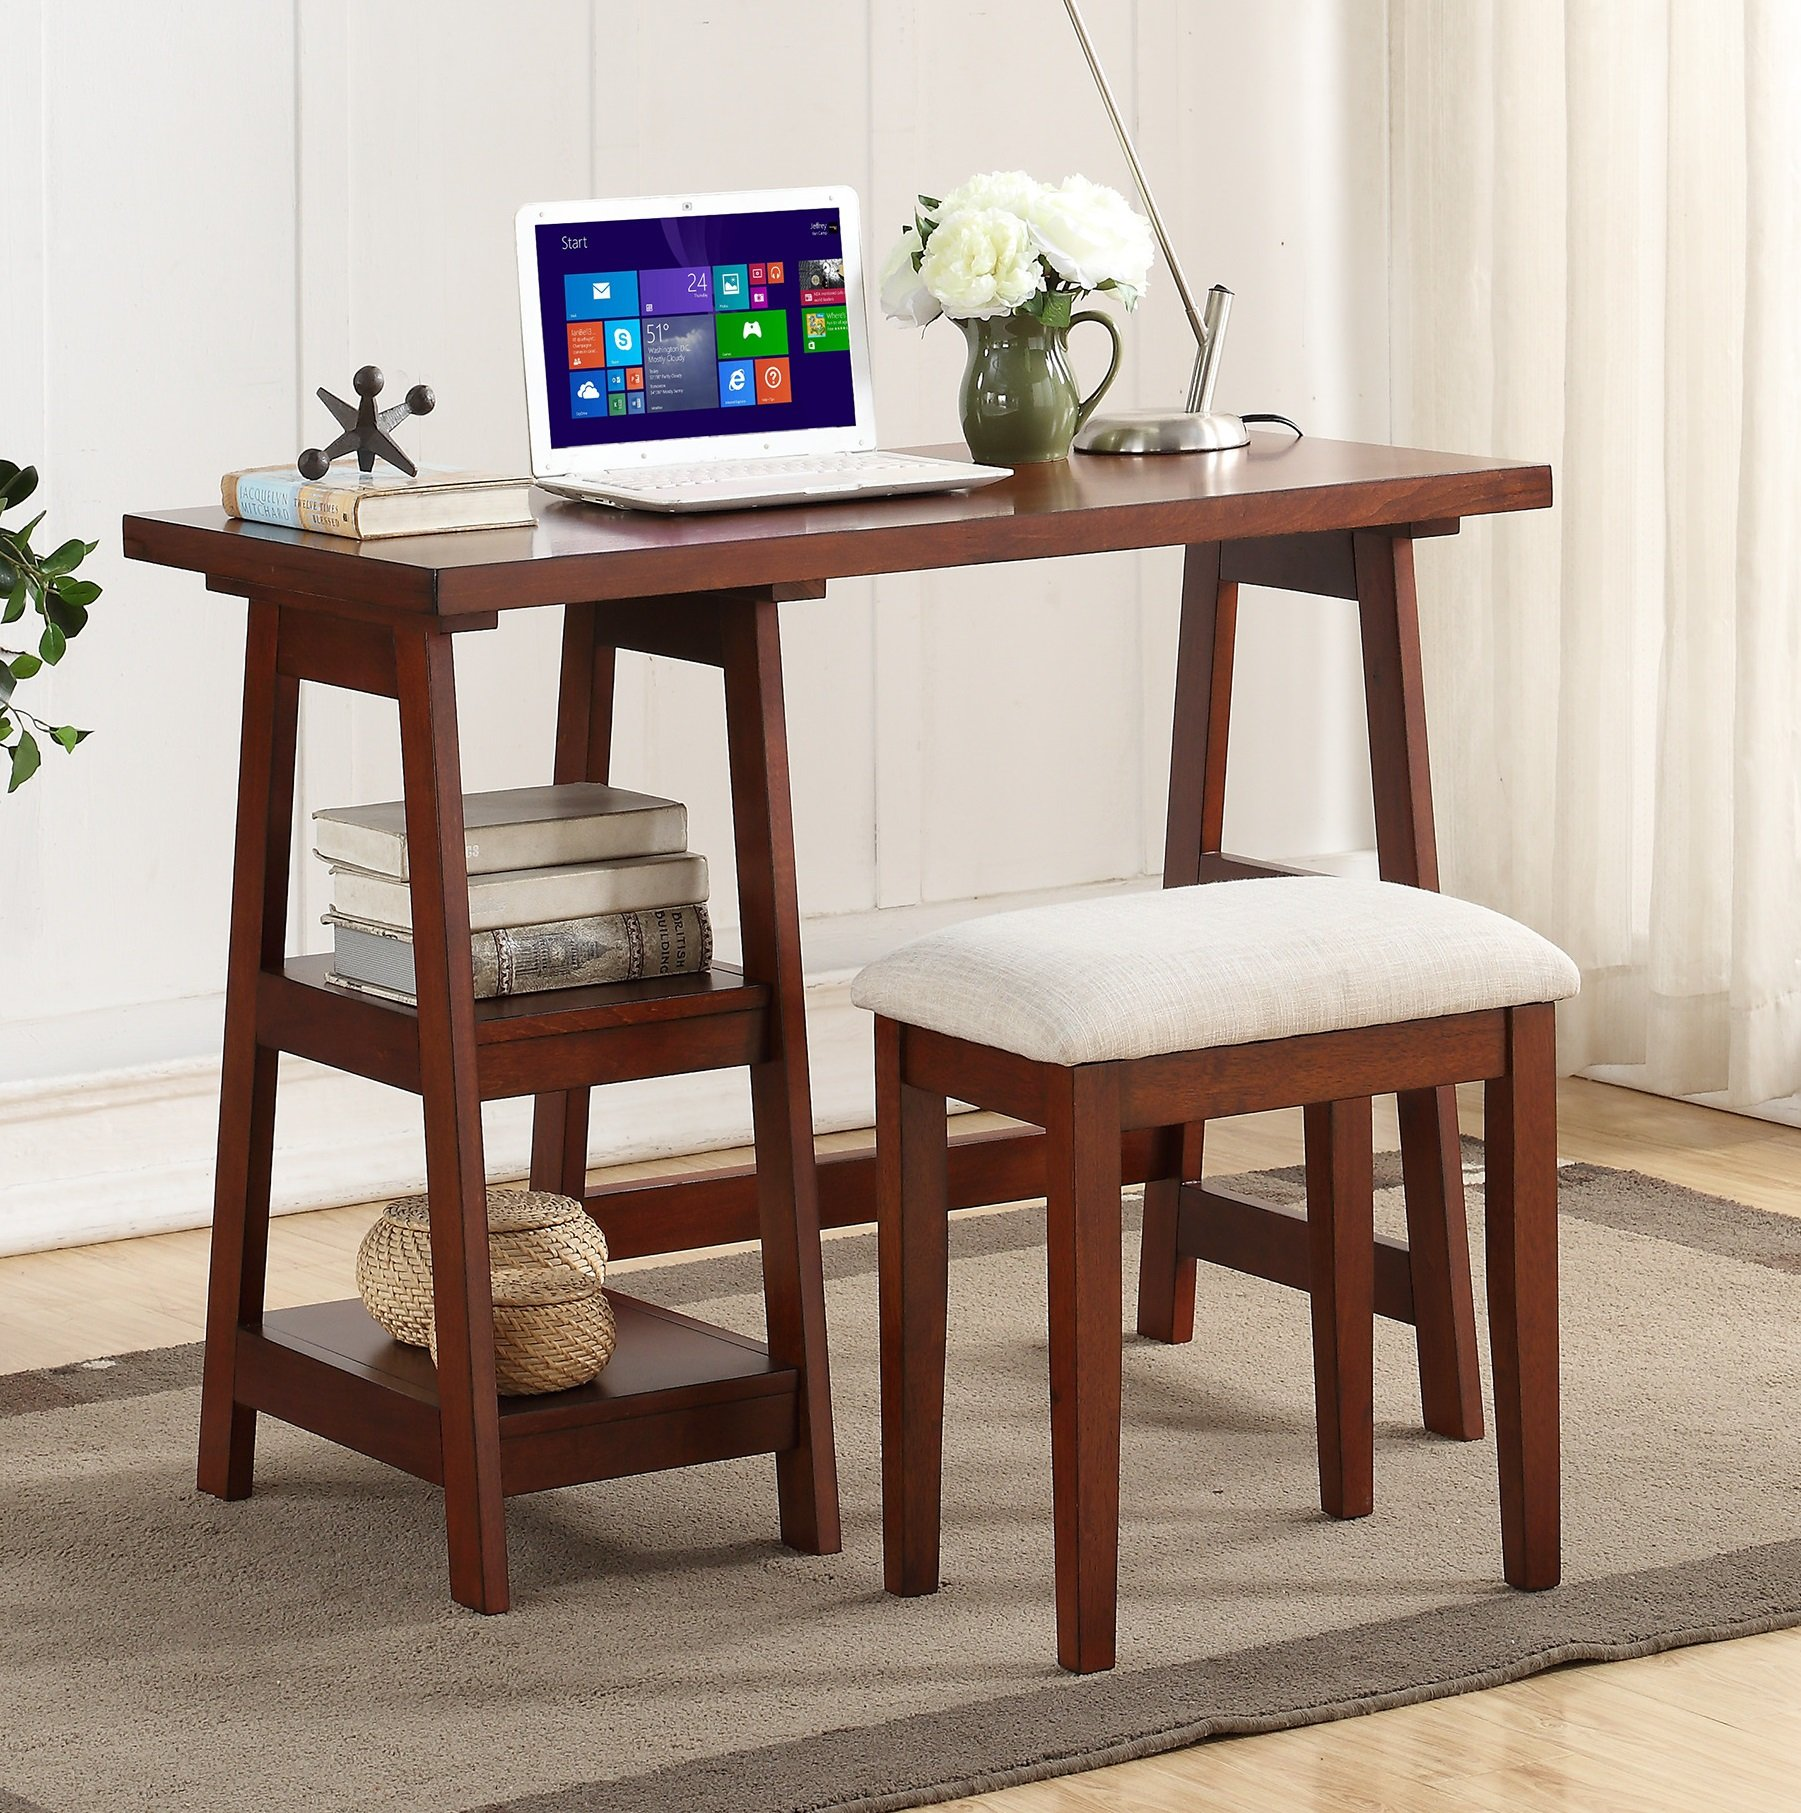 Major-Q Pxf4640 Cherry Finish Wooden Writing Desk with 2 Side Shelves and Stool